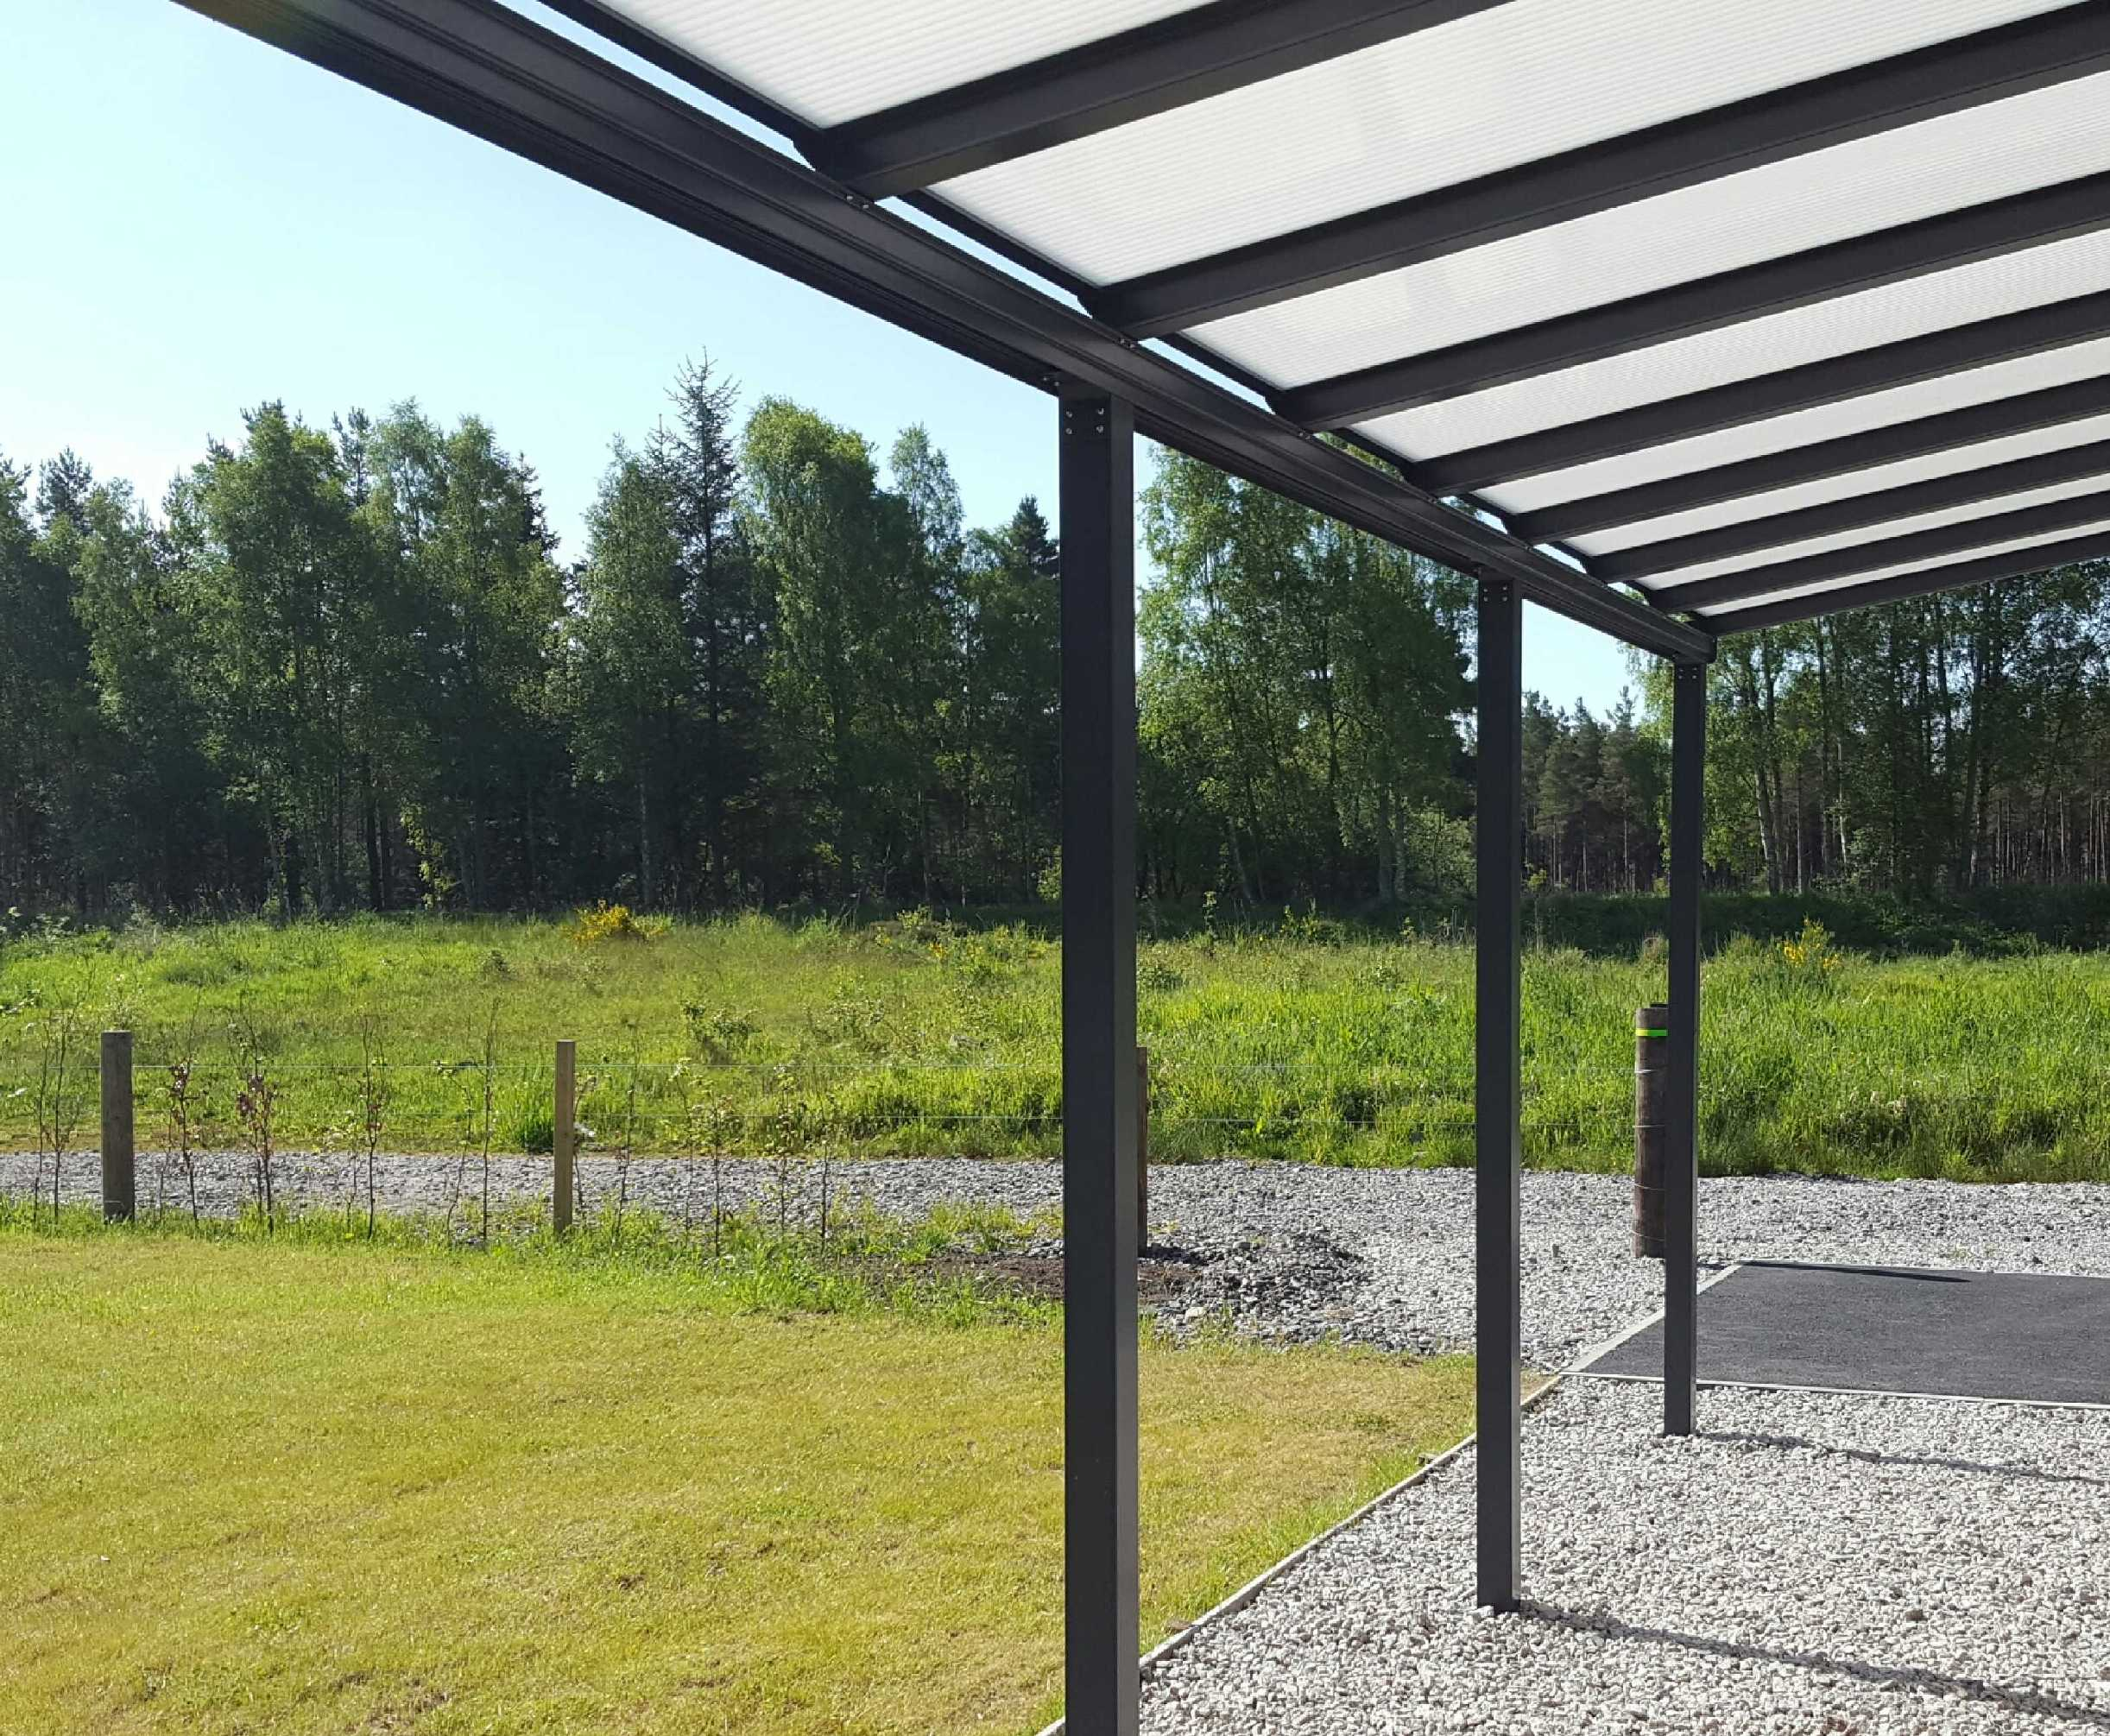 Omega Smart Lean-To Canopy, Anthracite Grey, 16mm Polycarbonate Glazing - 10.2m (W) x 4.5m (P), (5) Supporting Posts